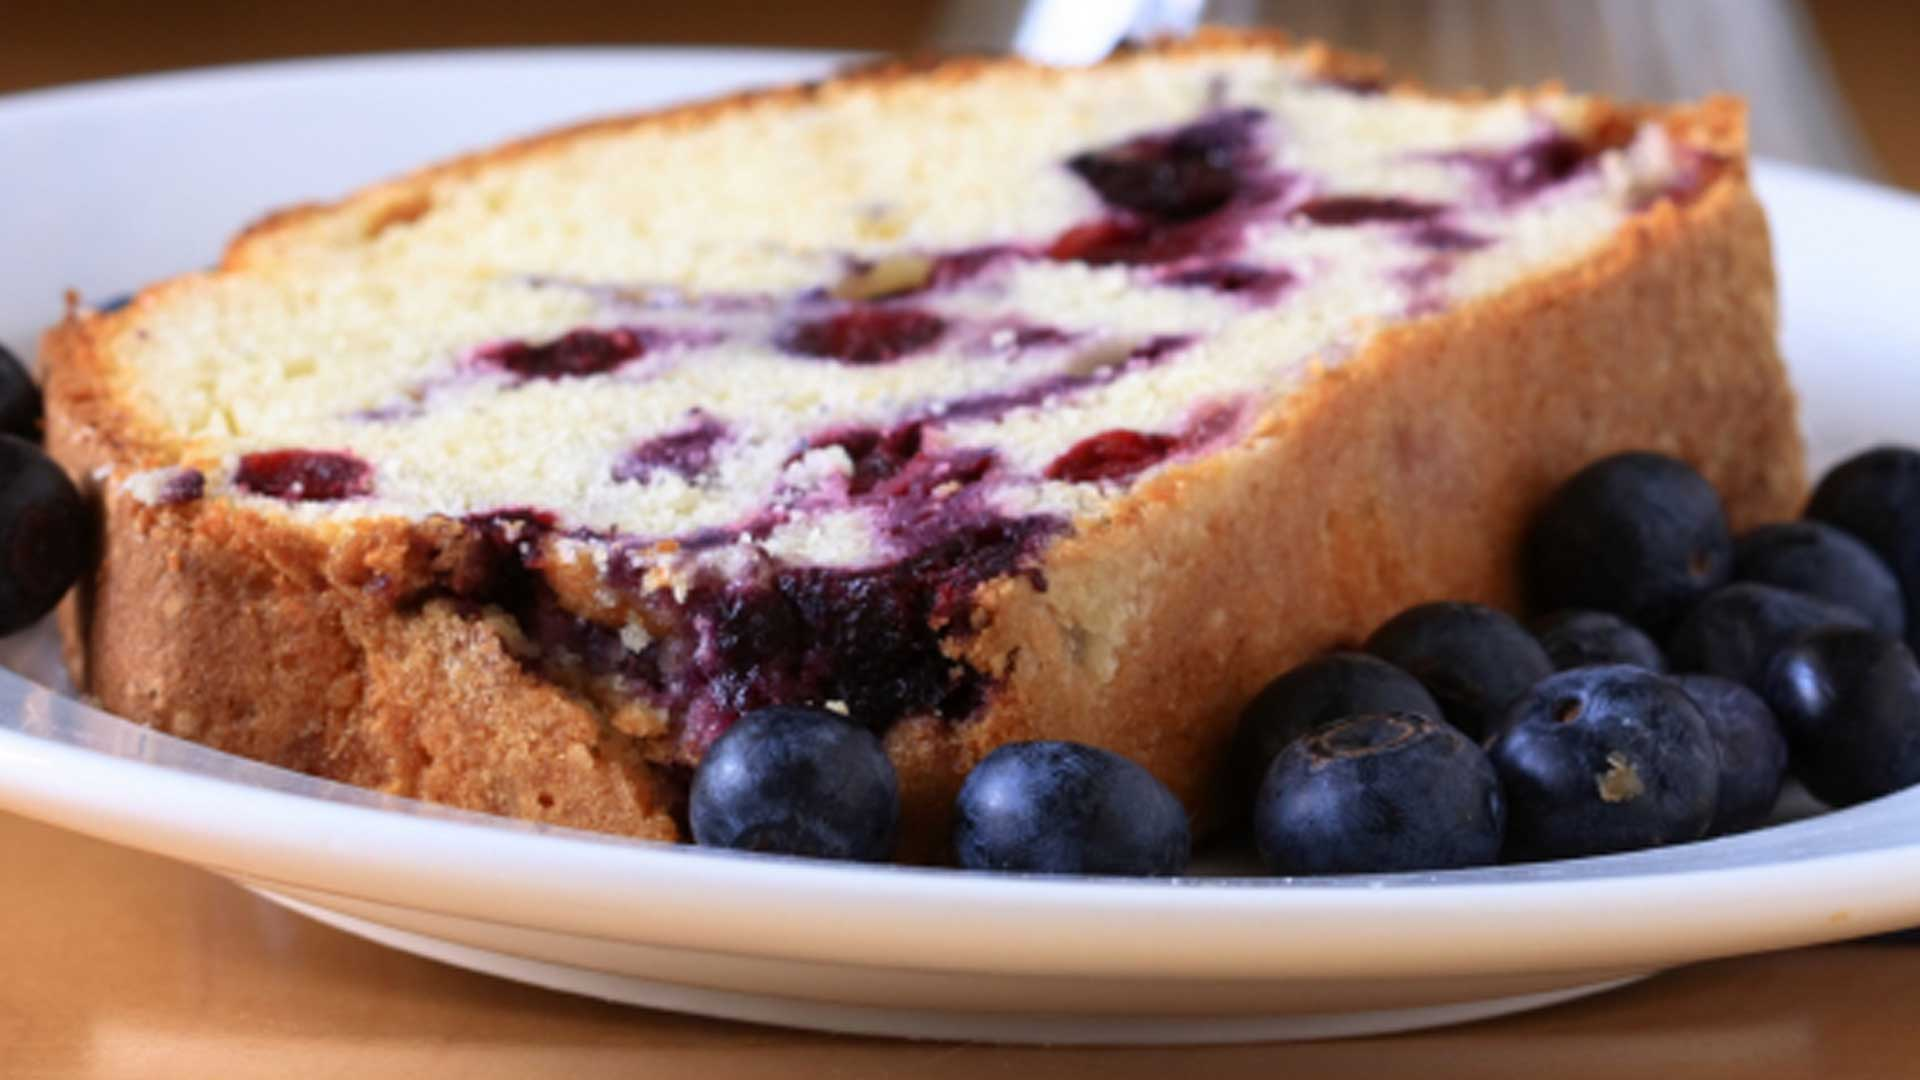 blueberry superfood recipe